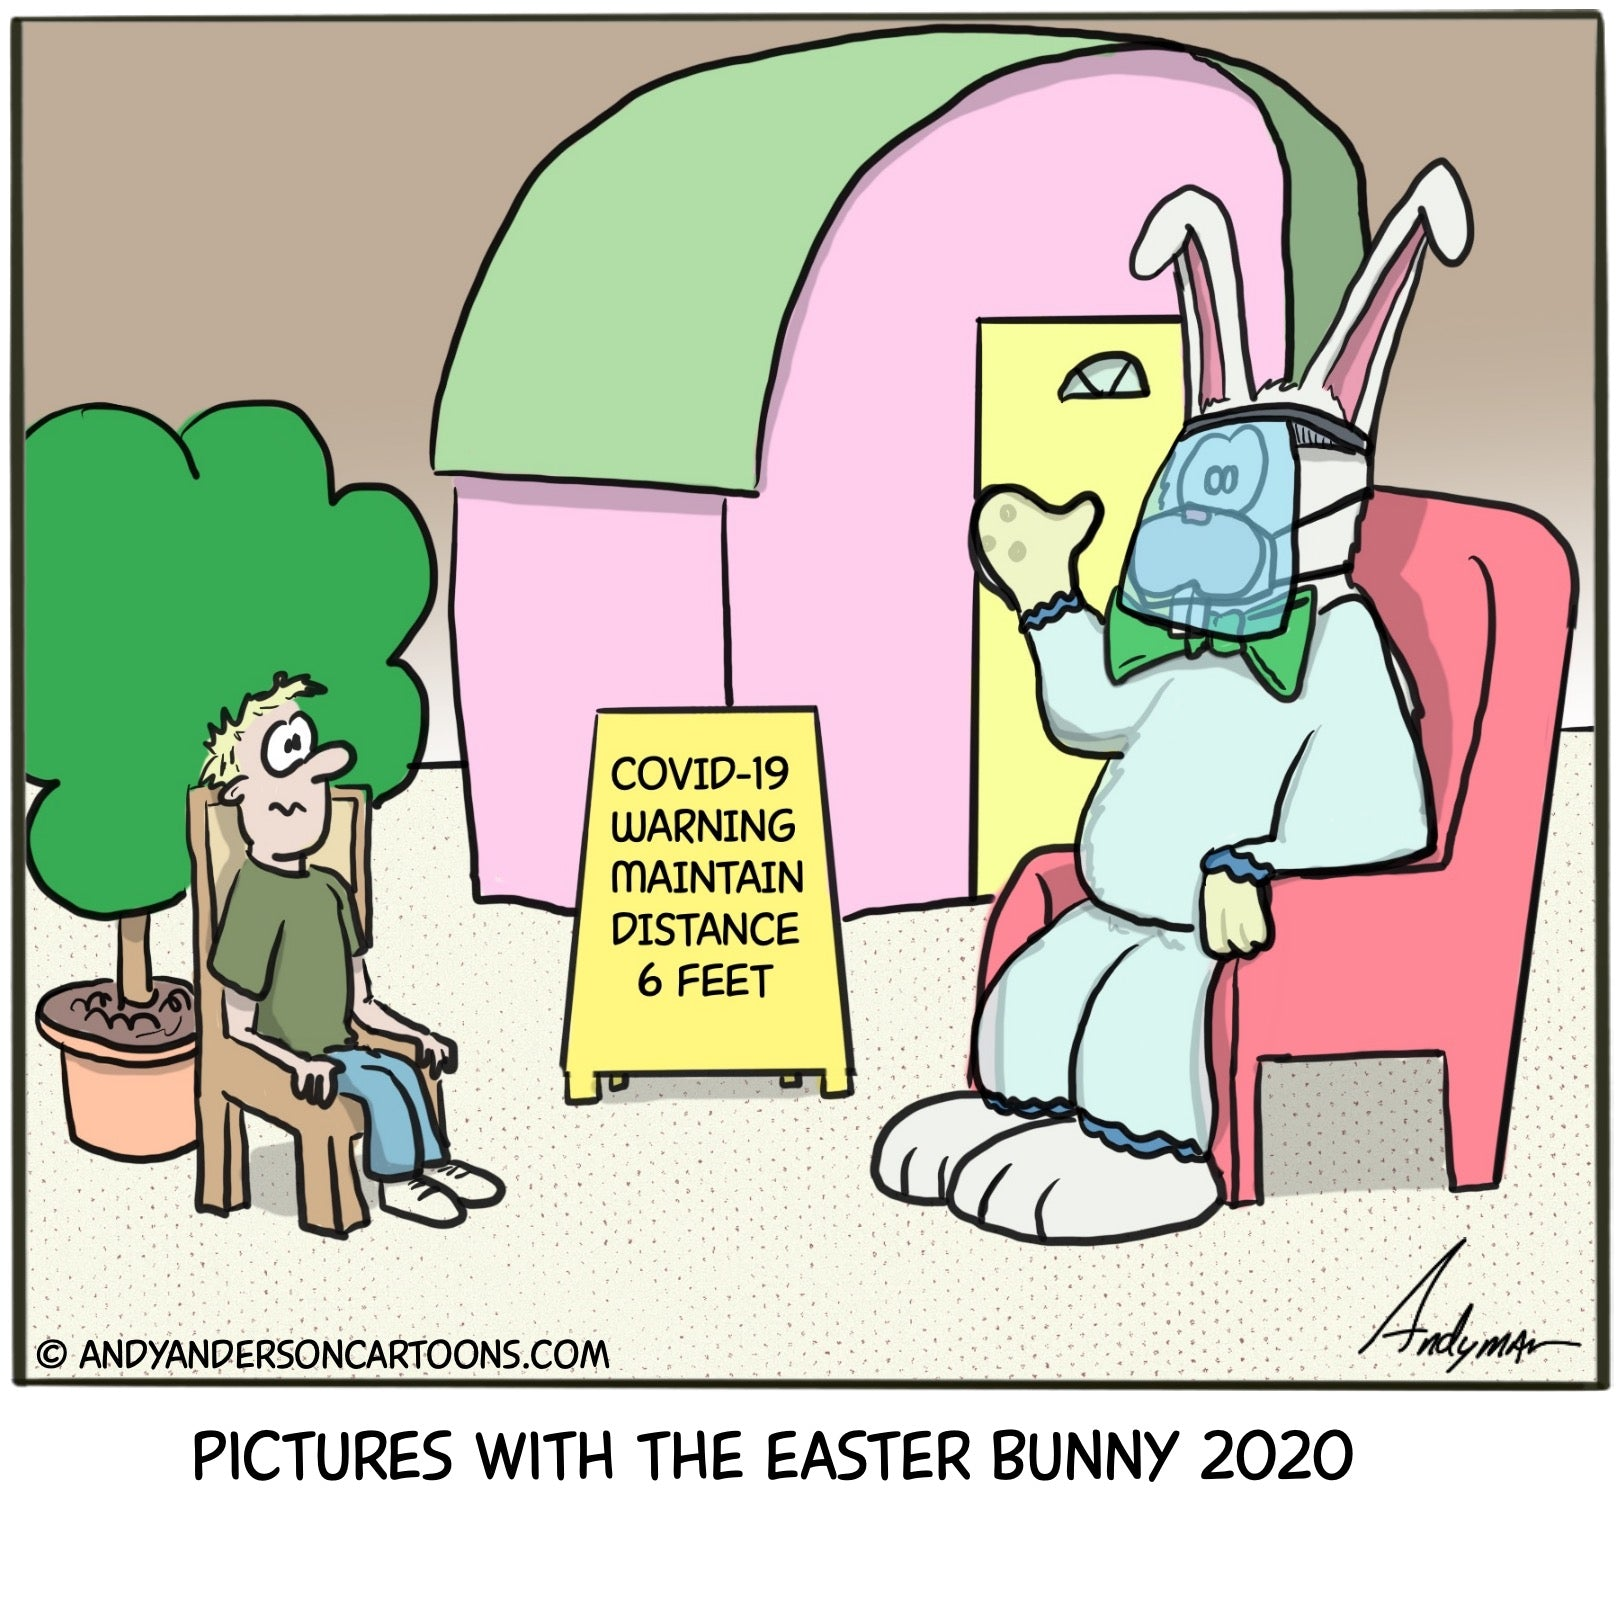 Cartoon about pictures with the Easter Bunny during the COVID-19 crisis